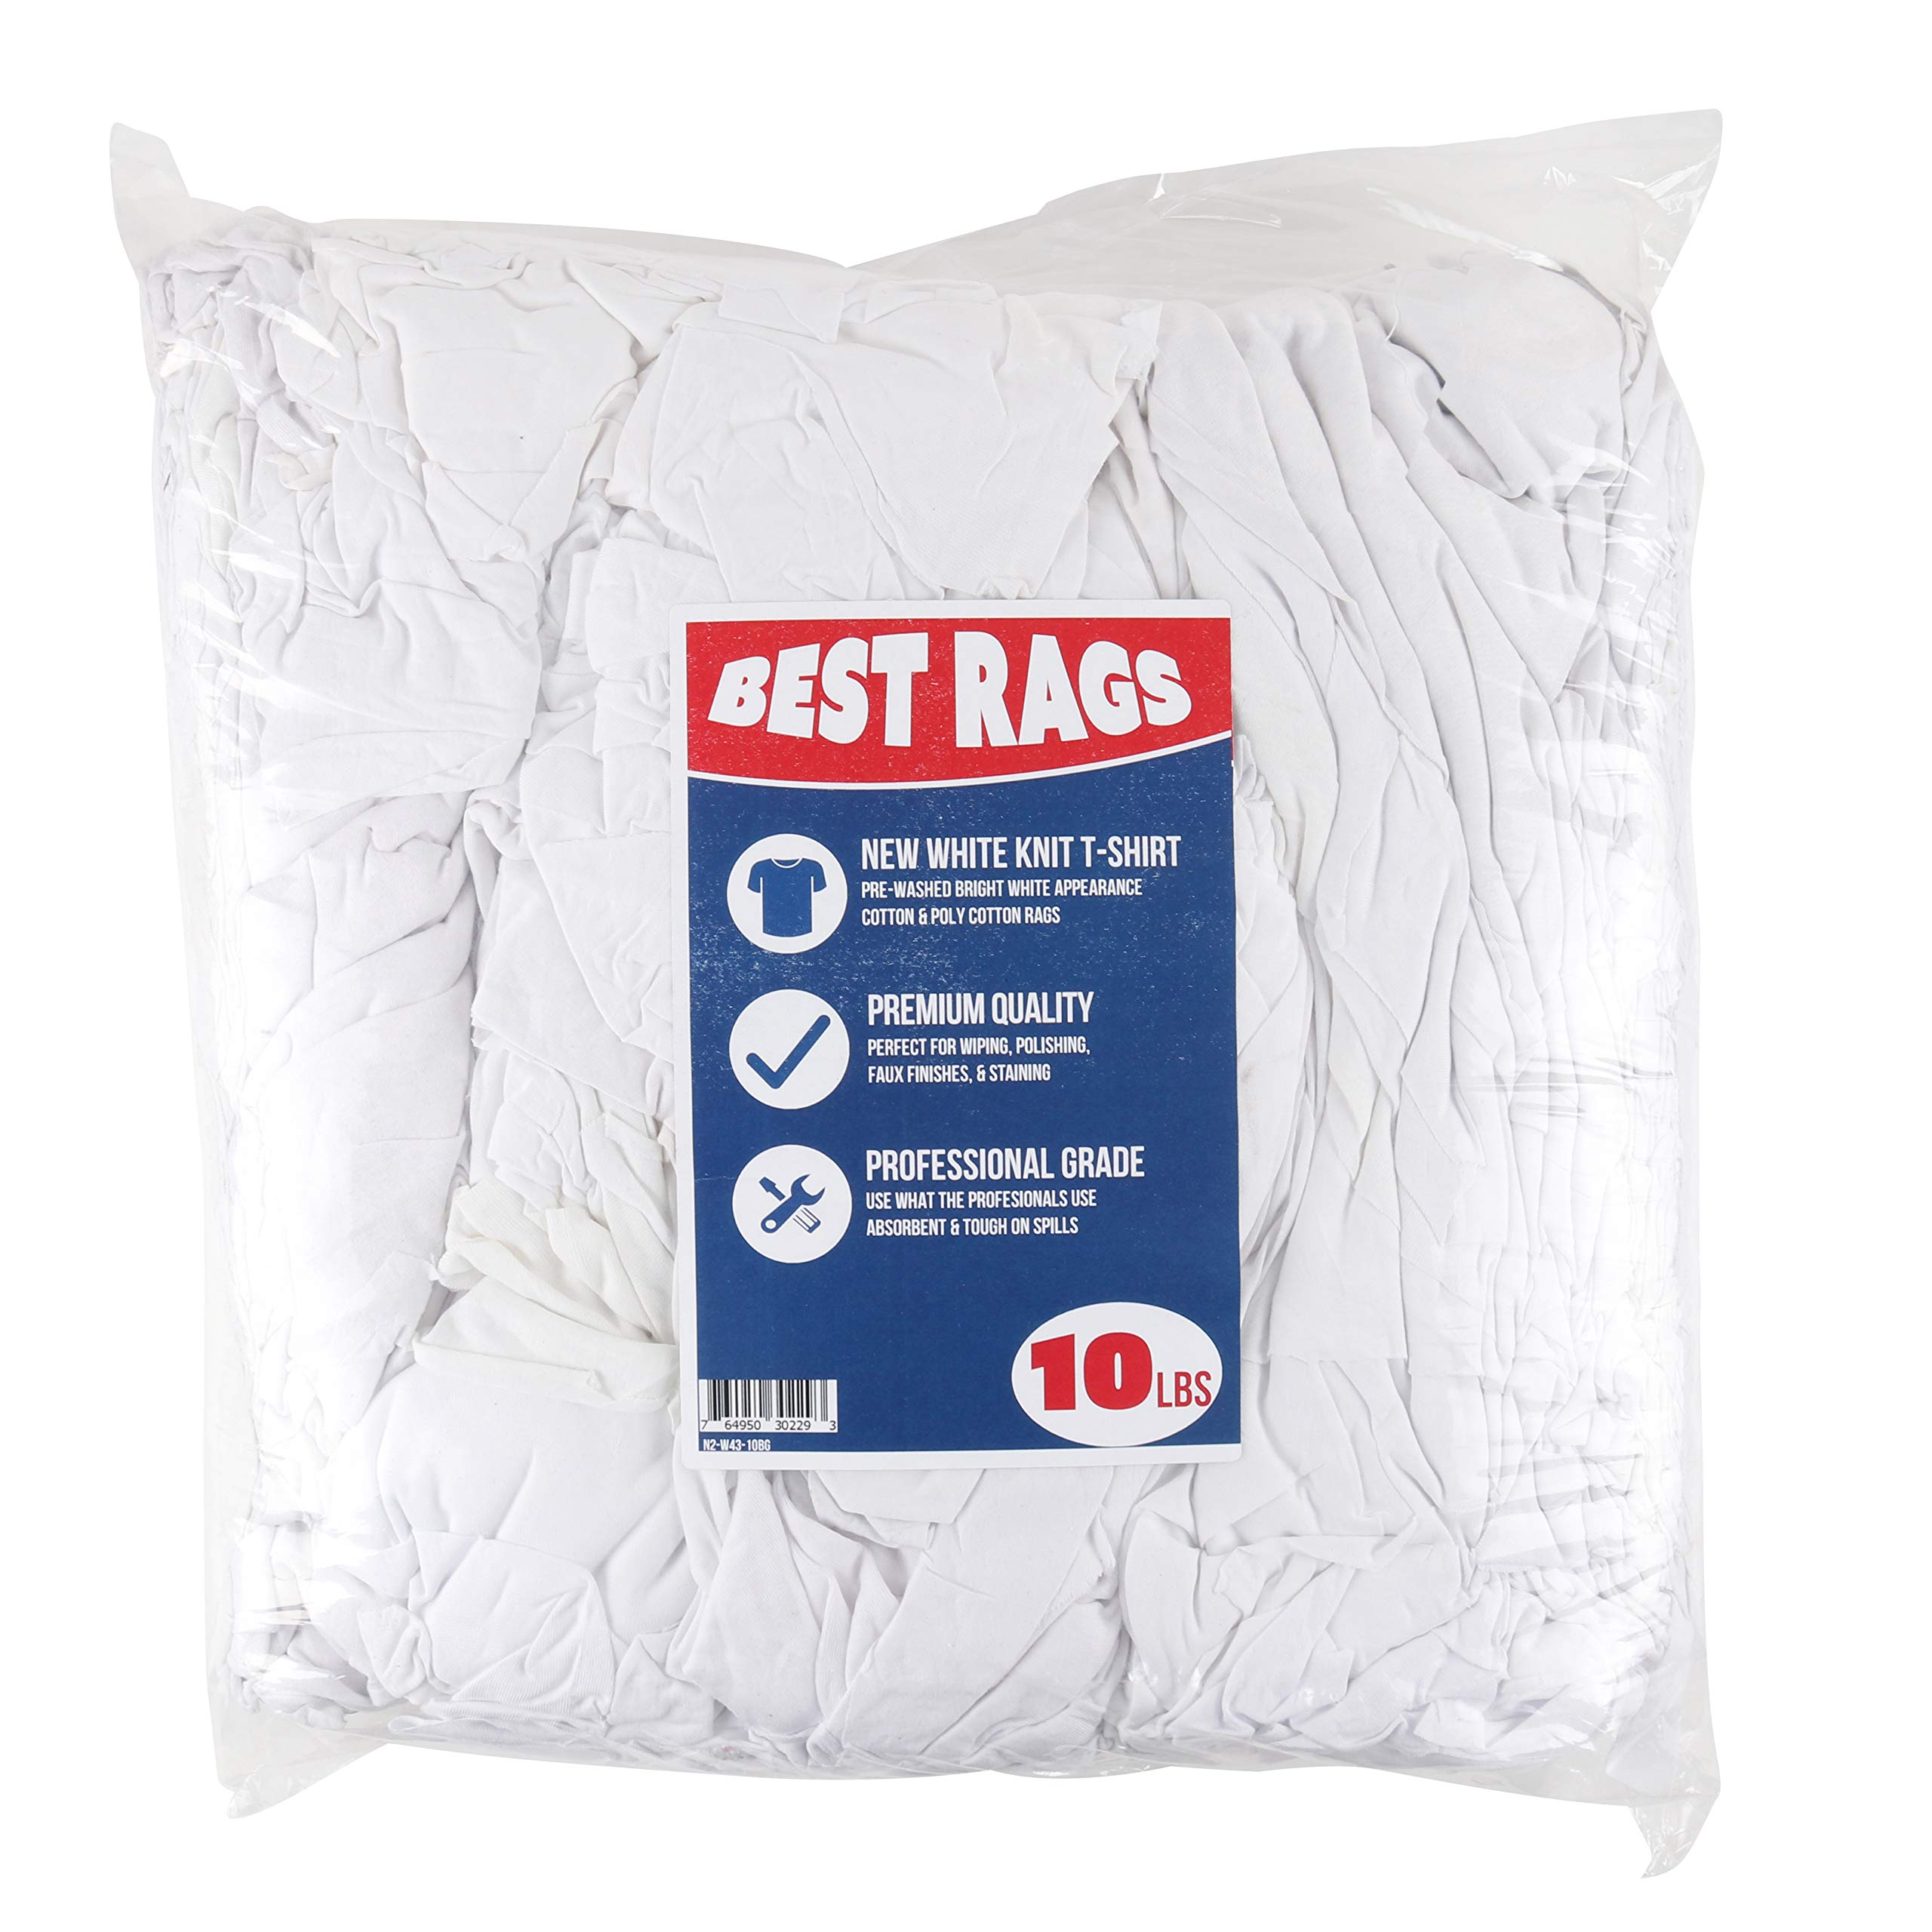 Arkwright White Knit Cleaning Rags | Cotton & Poly-Cotton Commercial Grade Rags | Perfect for Your Home, Garage, Auto, Shop Floor (10 lbs. in a Bag)